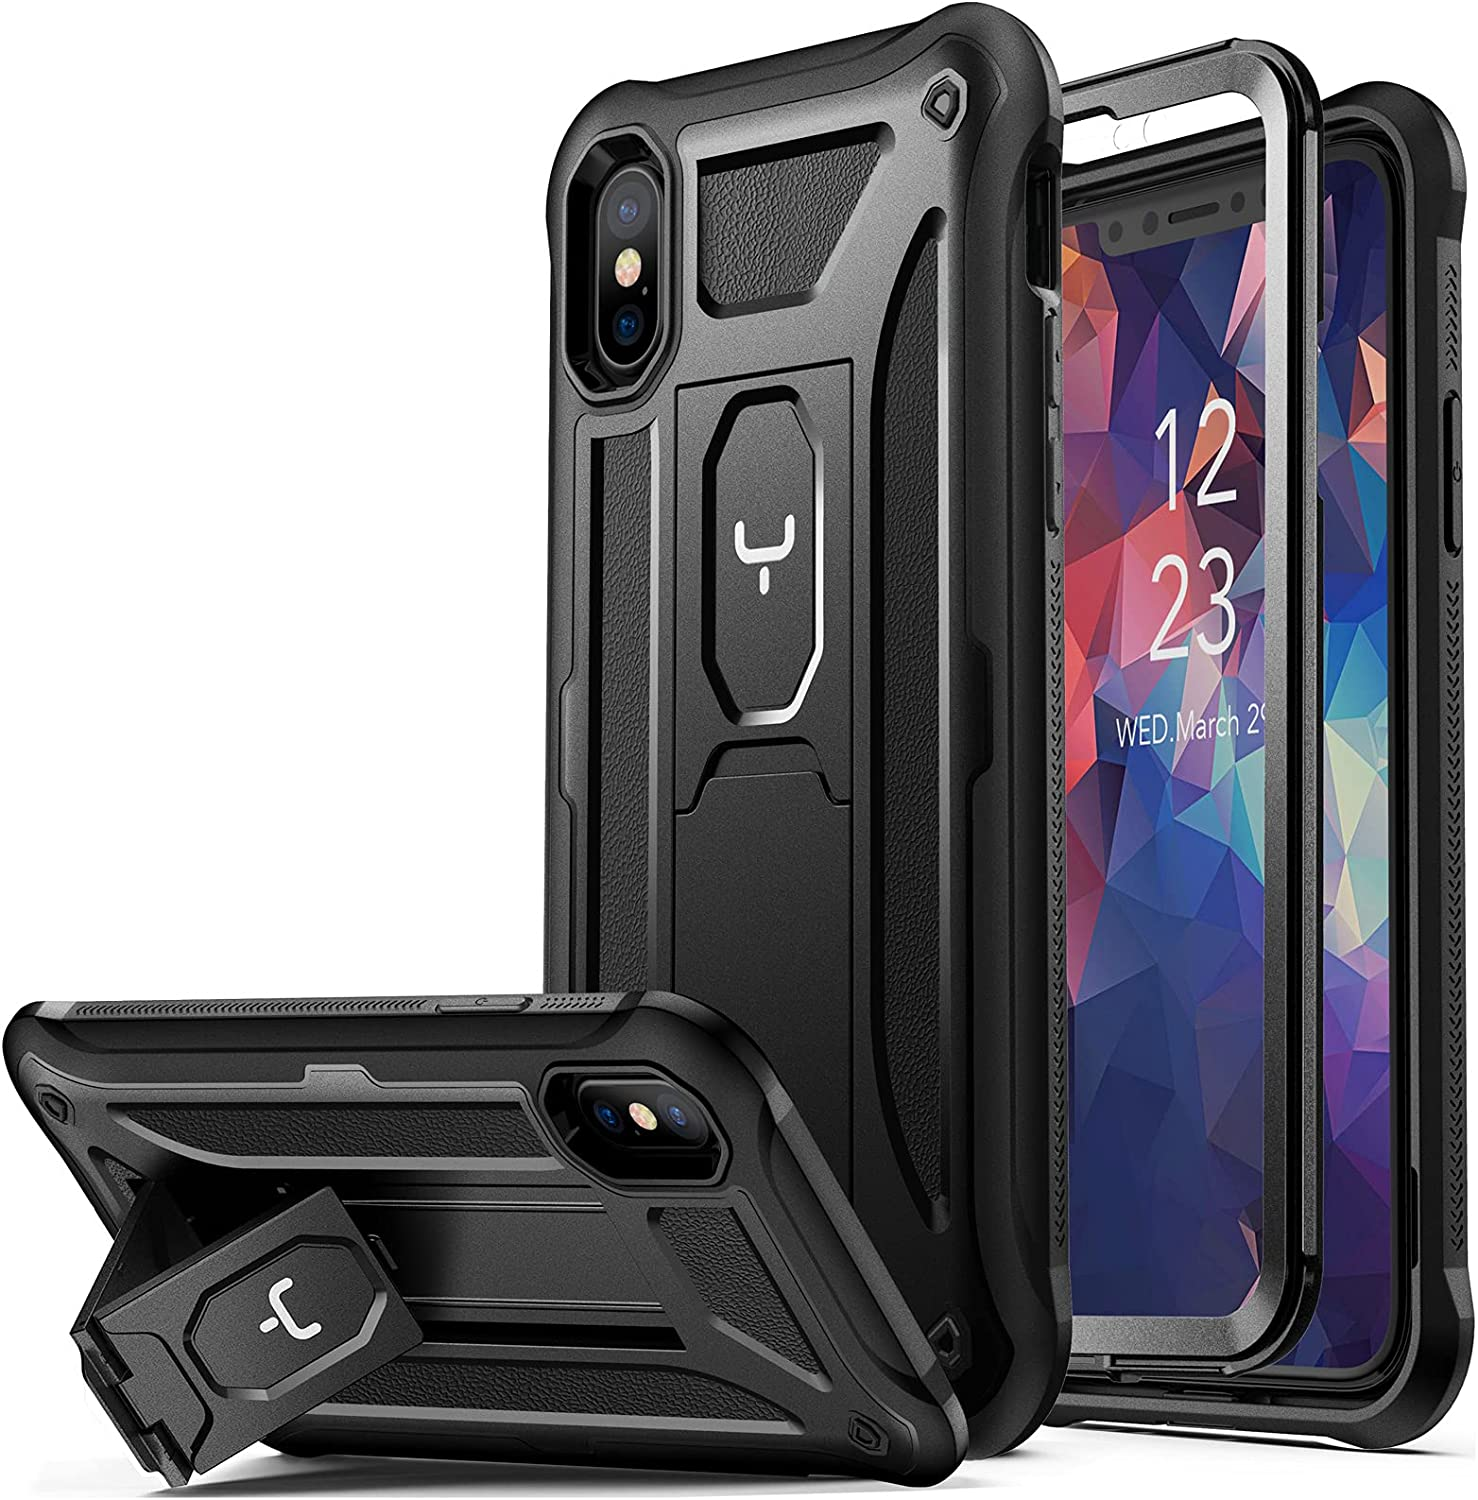 YOUMAKER iPhone Xs Max Case, with Built-in Tempered Glass Screen Protector and Kickstand Heavy Duty Protection Shockproof Cover for iPhone Xs Max Phone Case 6.5 Inch-Black